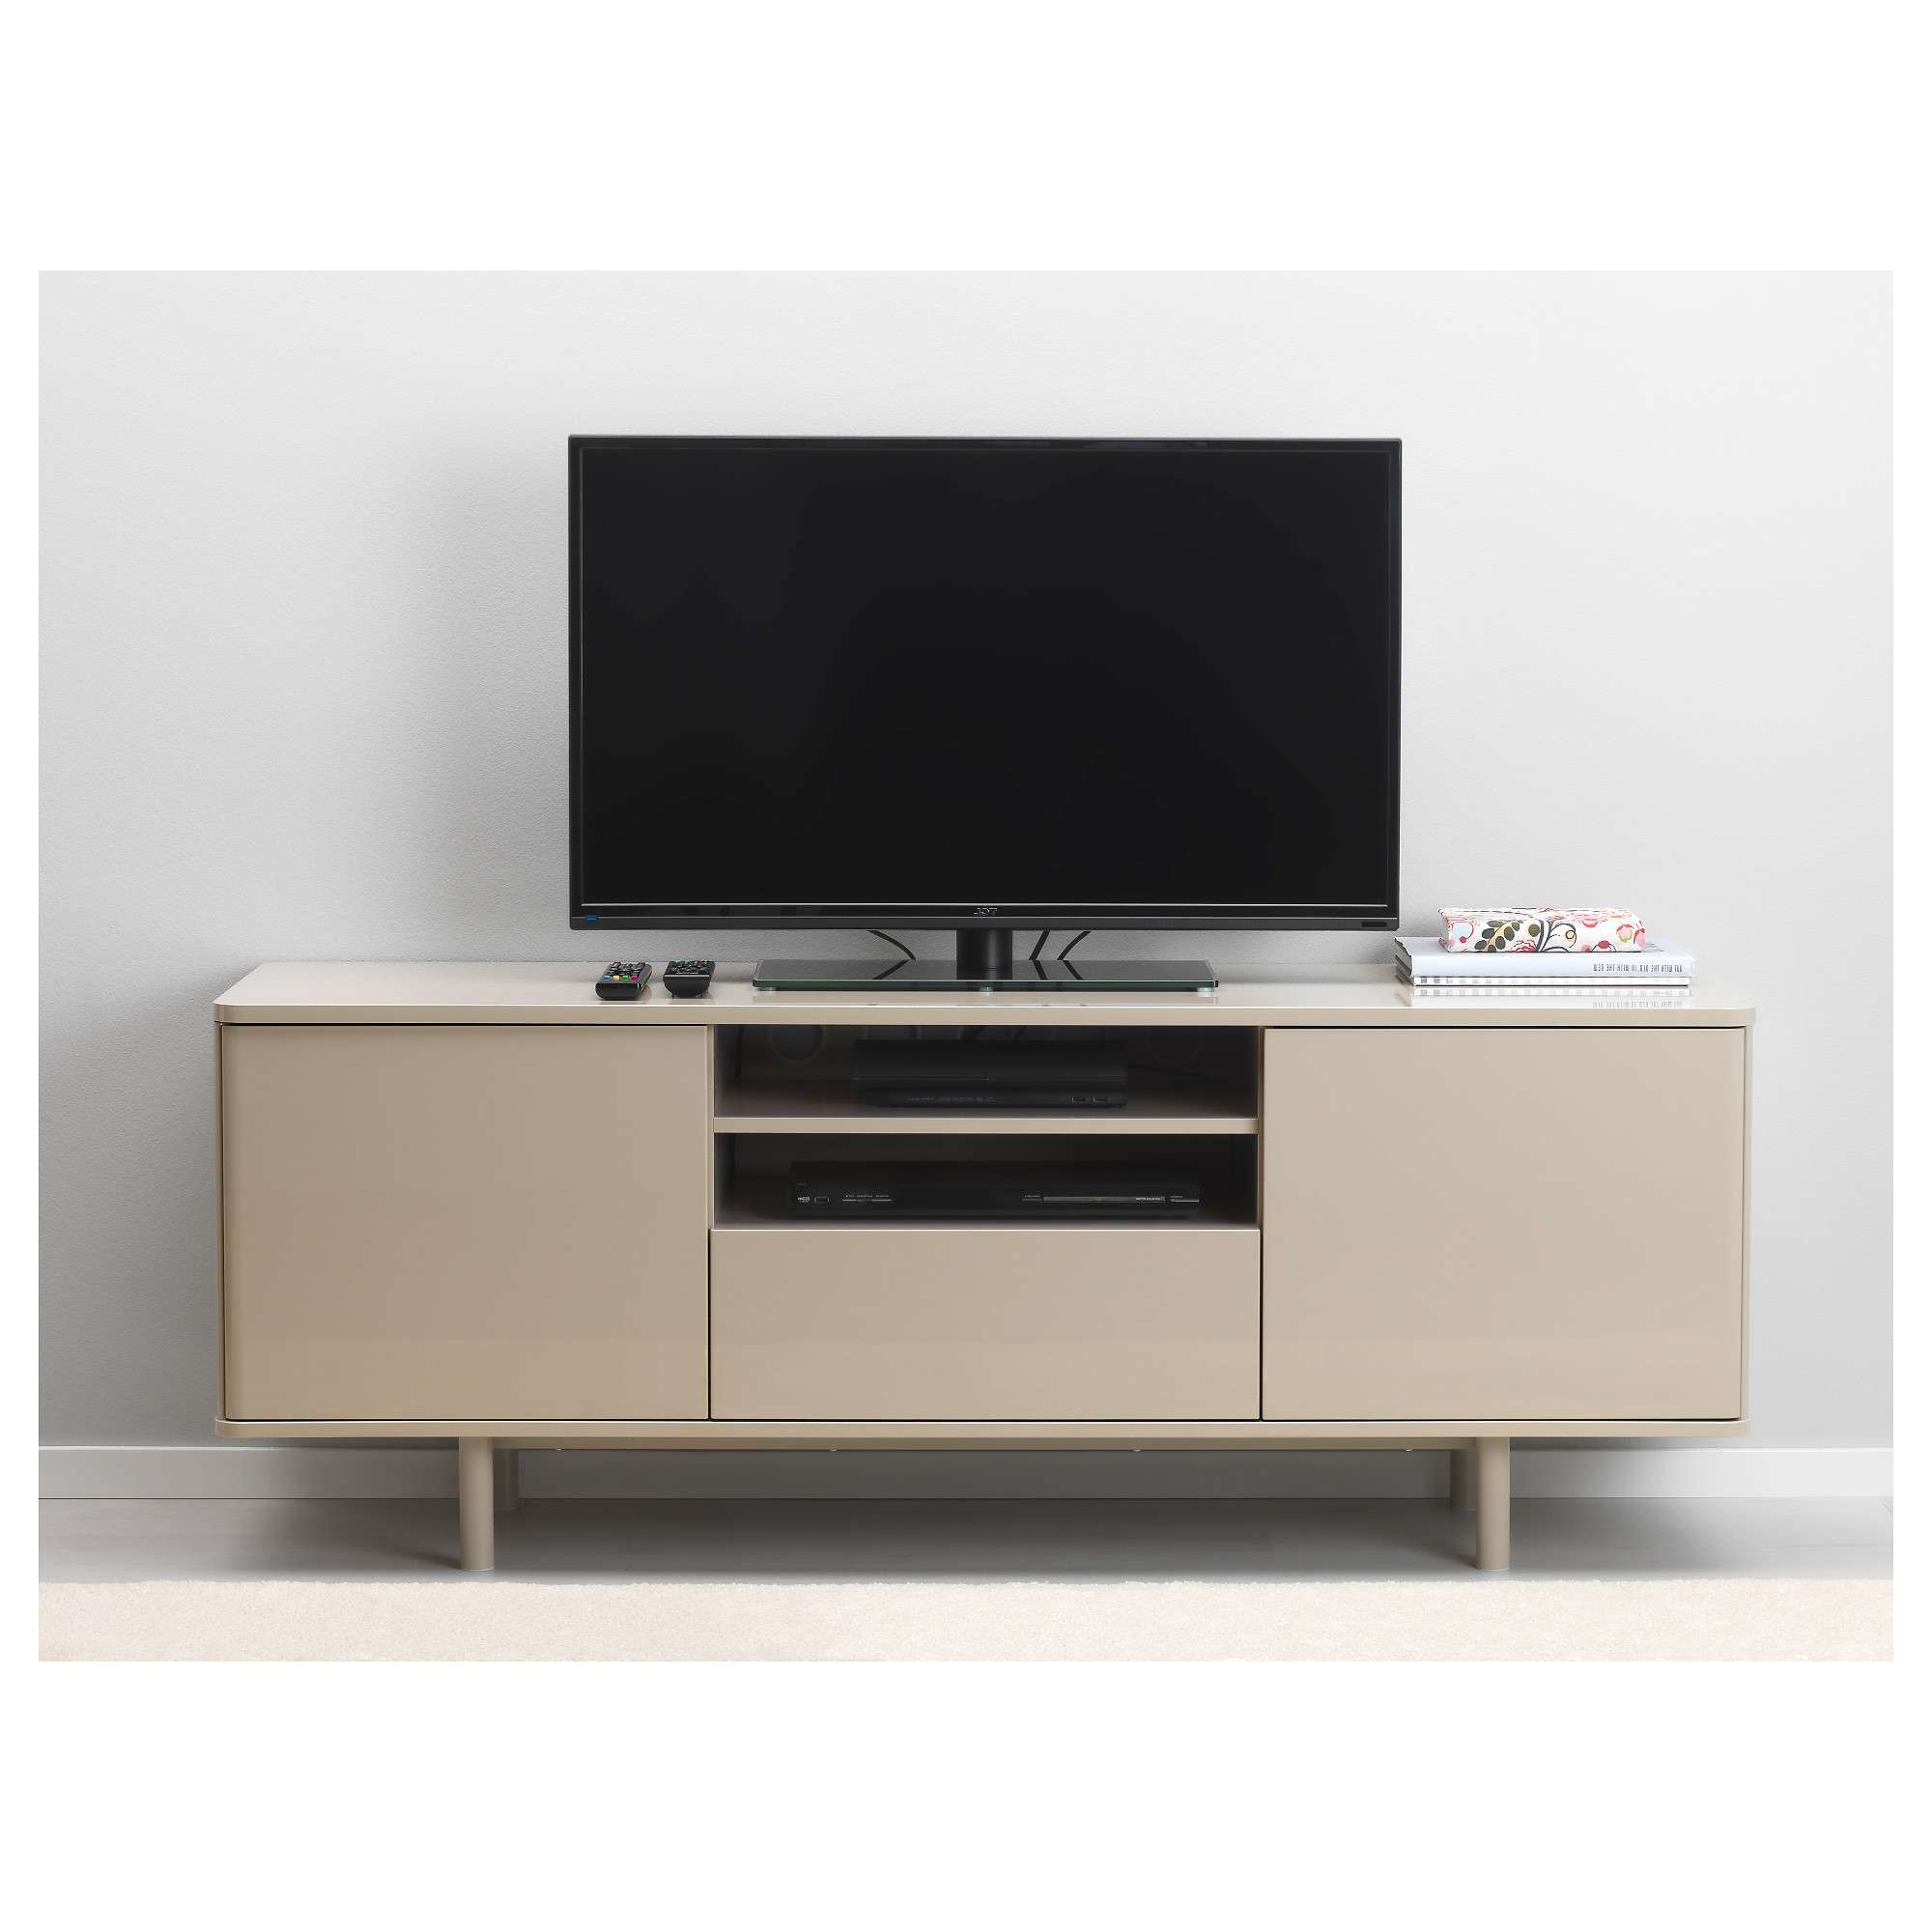 Mostorp Tv Bench Beige 159x46 Cm – Ikea Inside Bench Tv Stands (View 9 of 15)